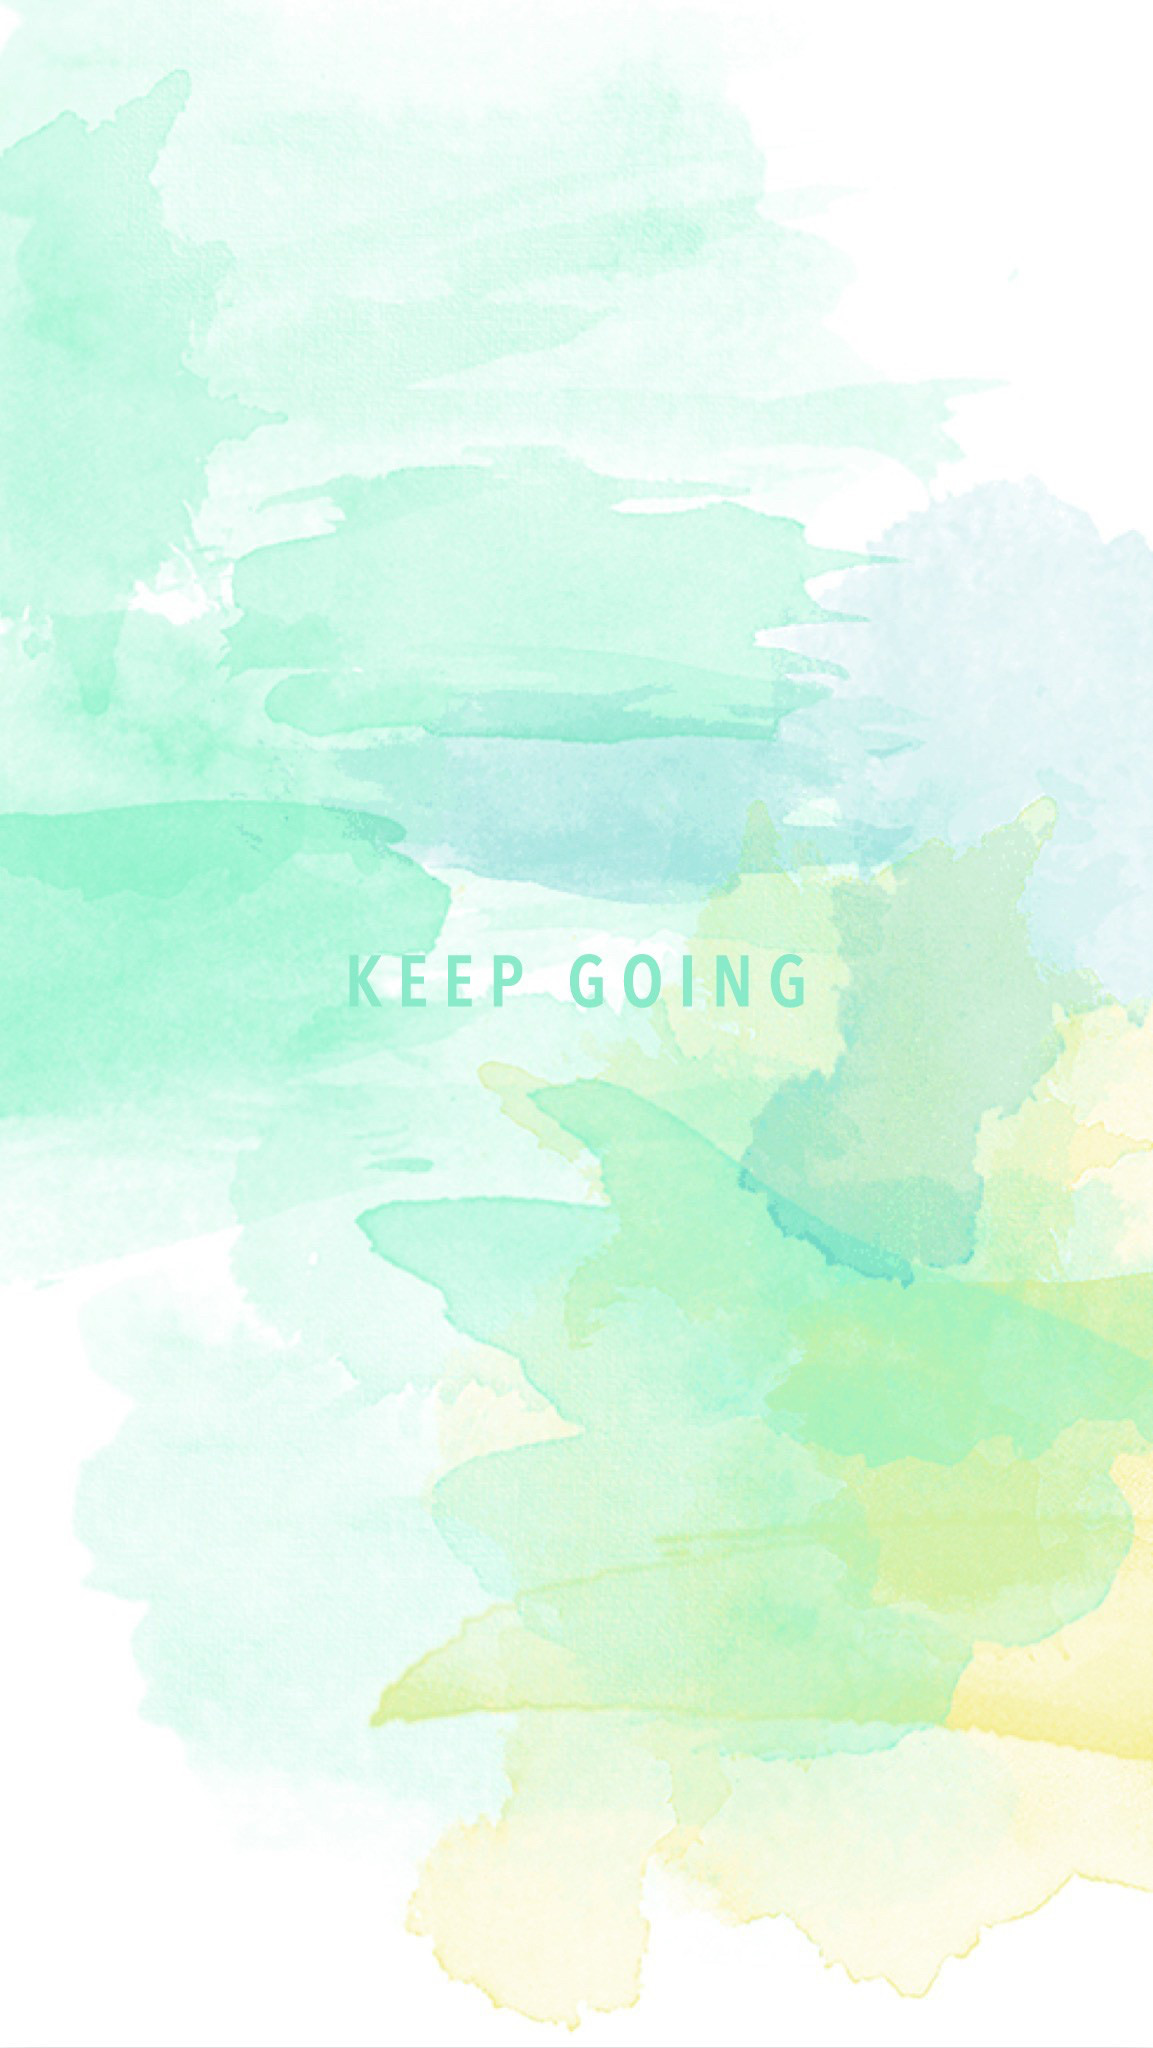 1153x2048 Mint green yellow watercolor Keep Going phone wallpaper phone background